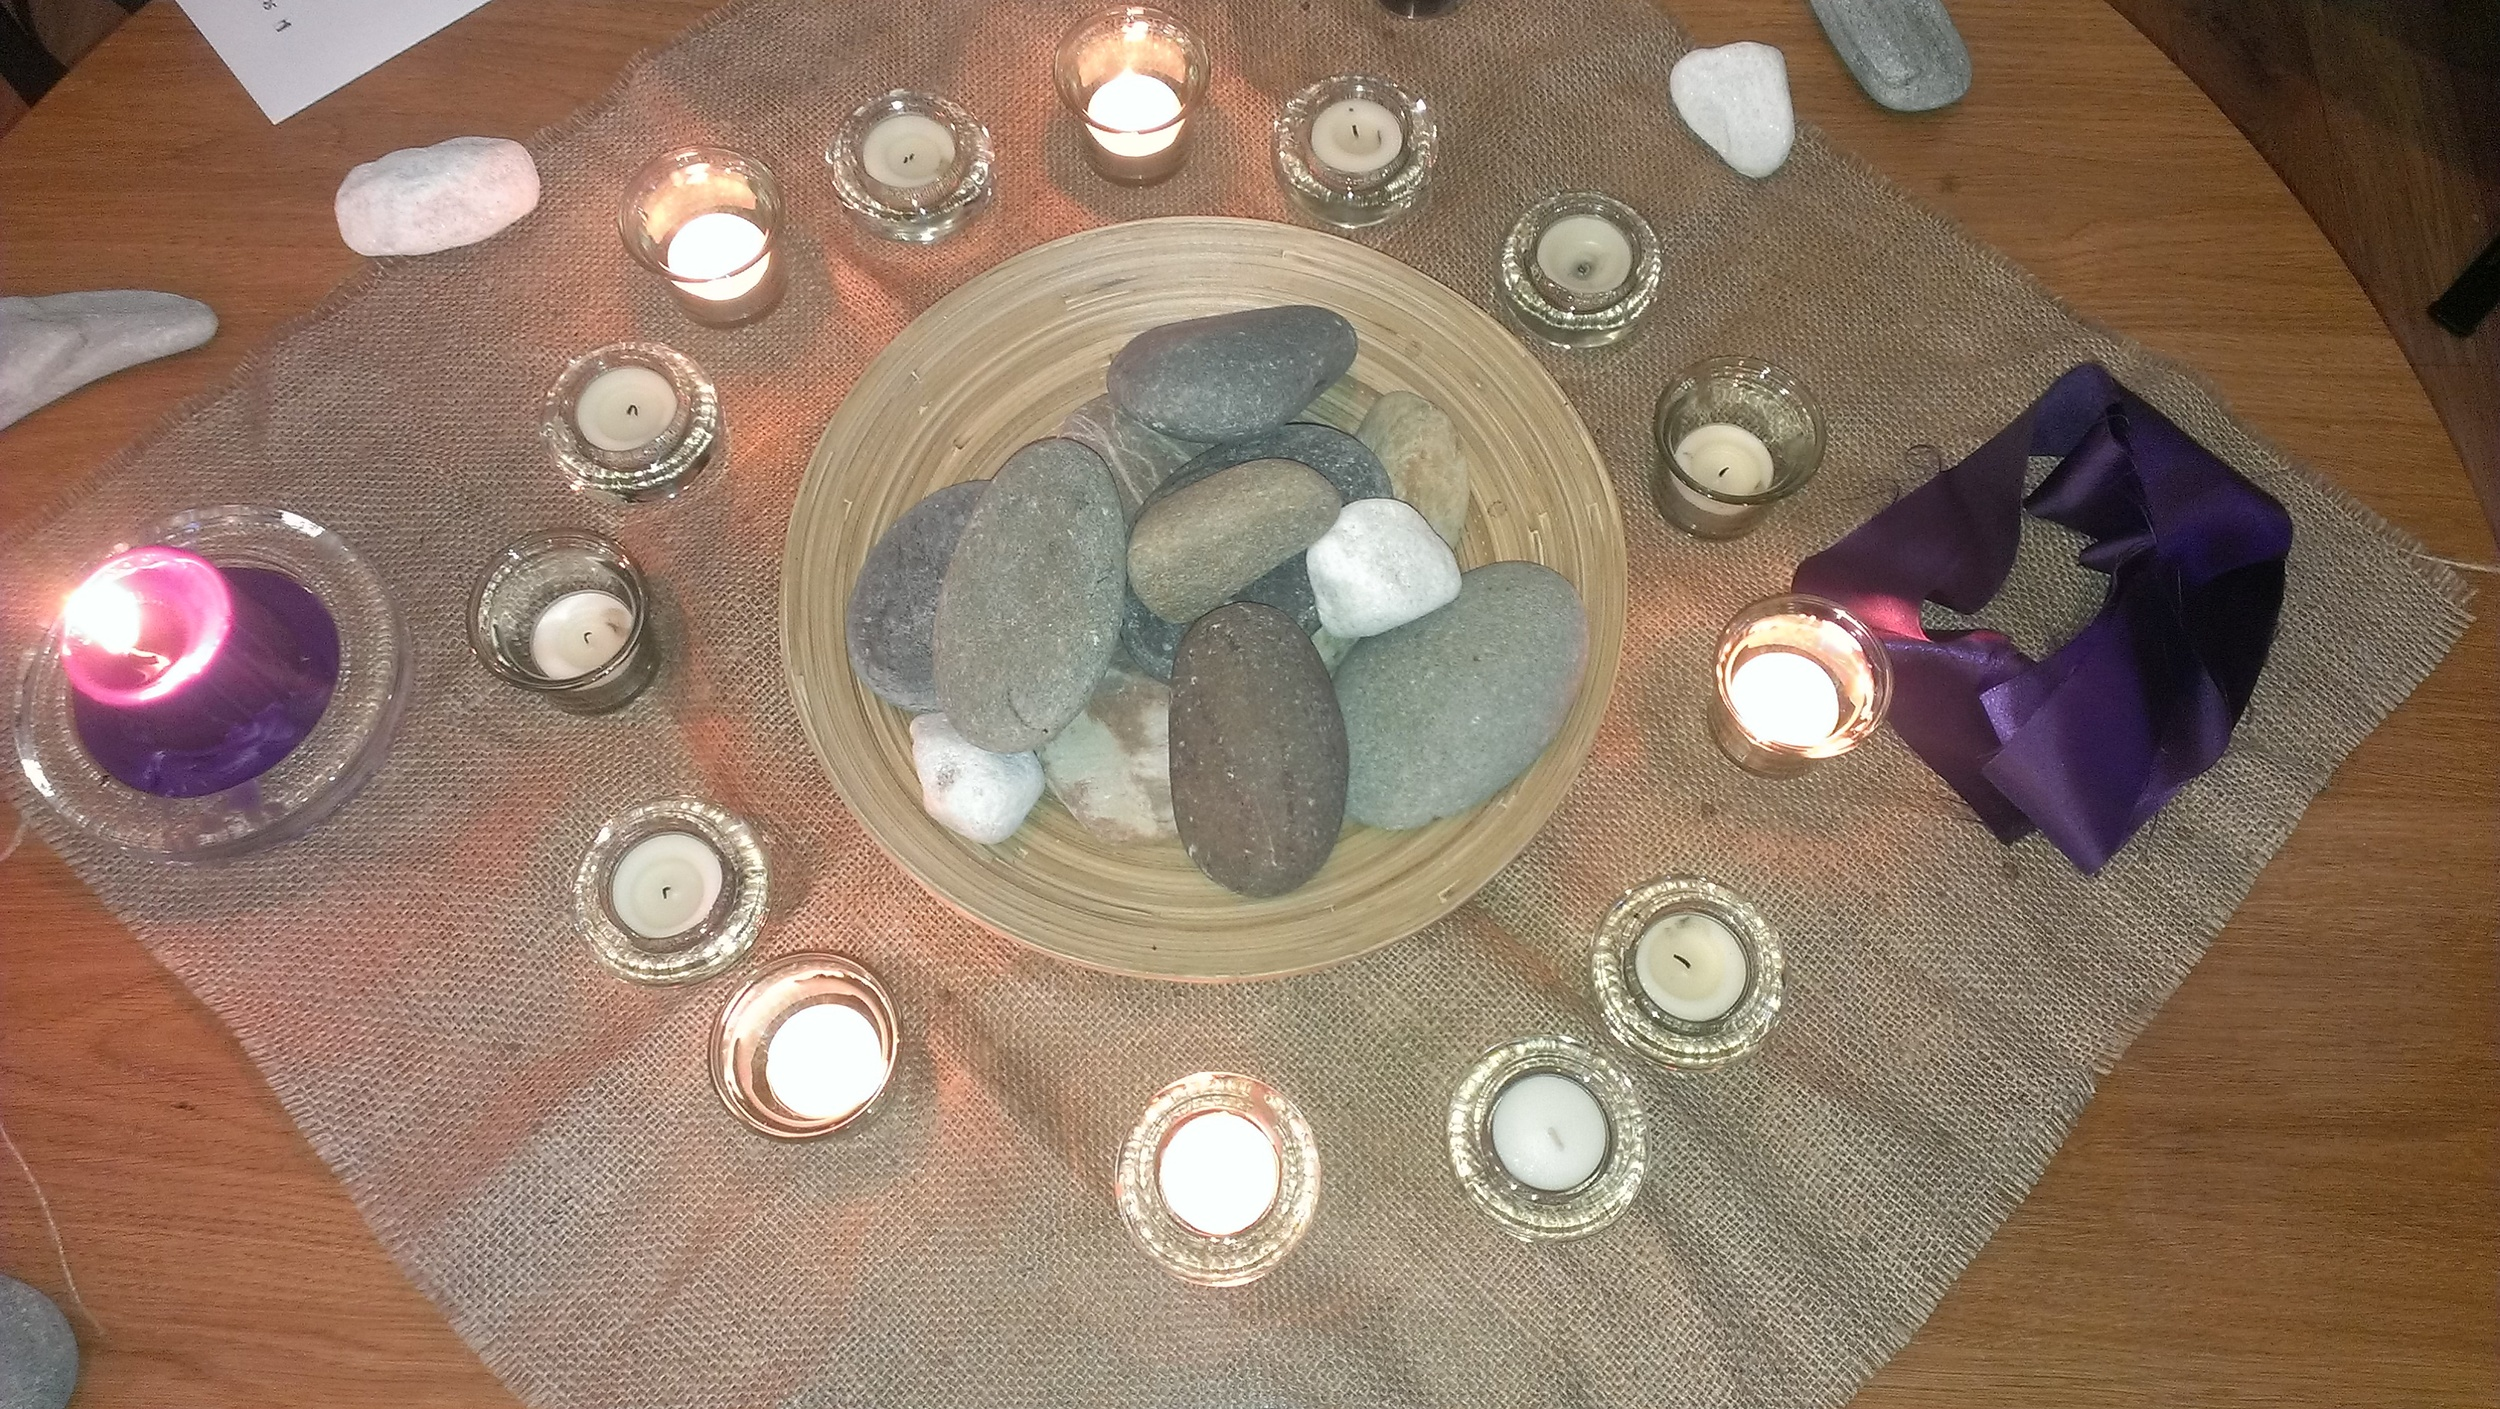 Our prayer table